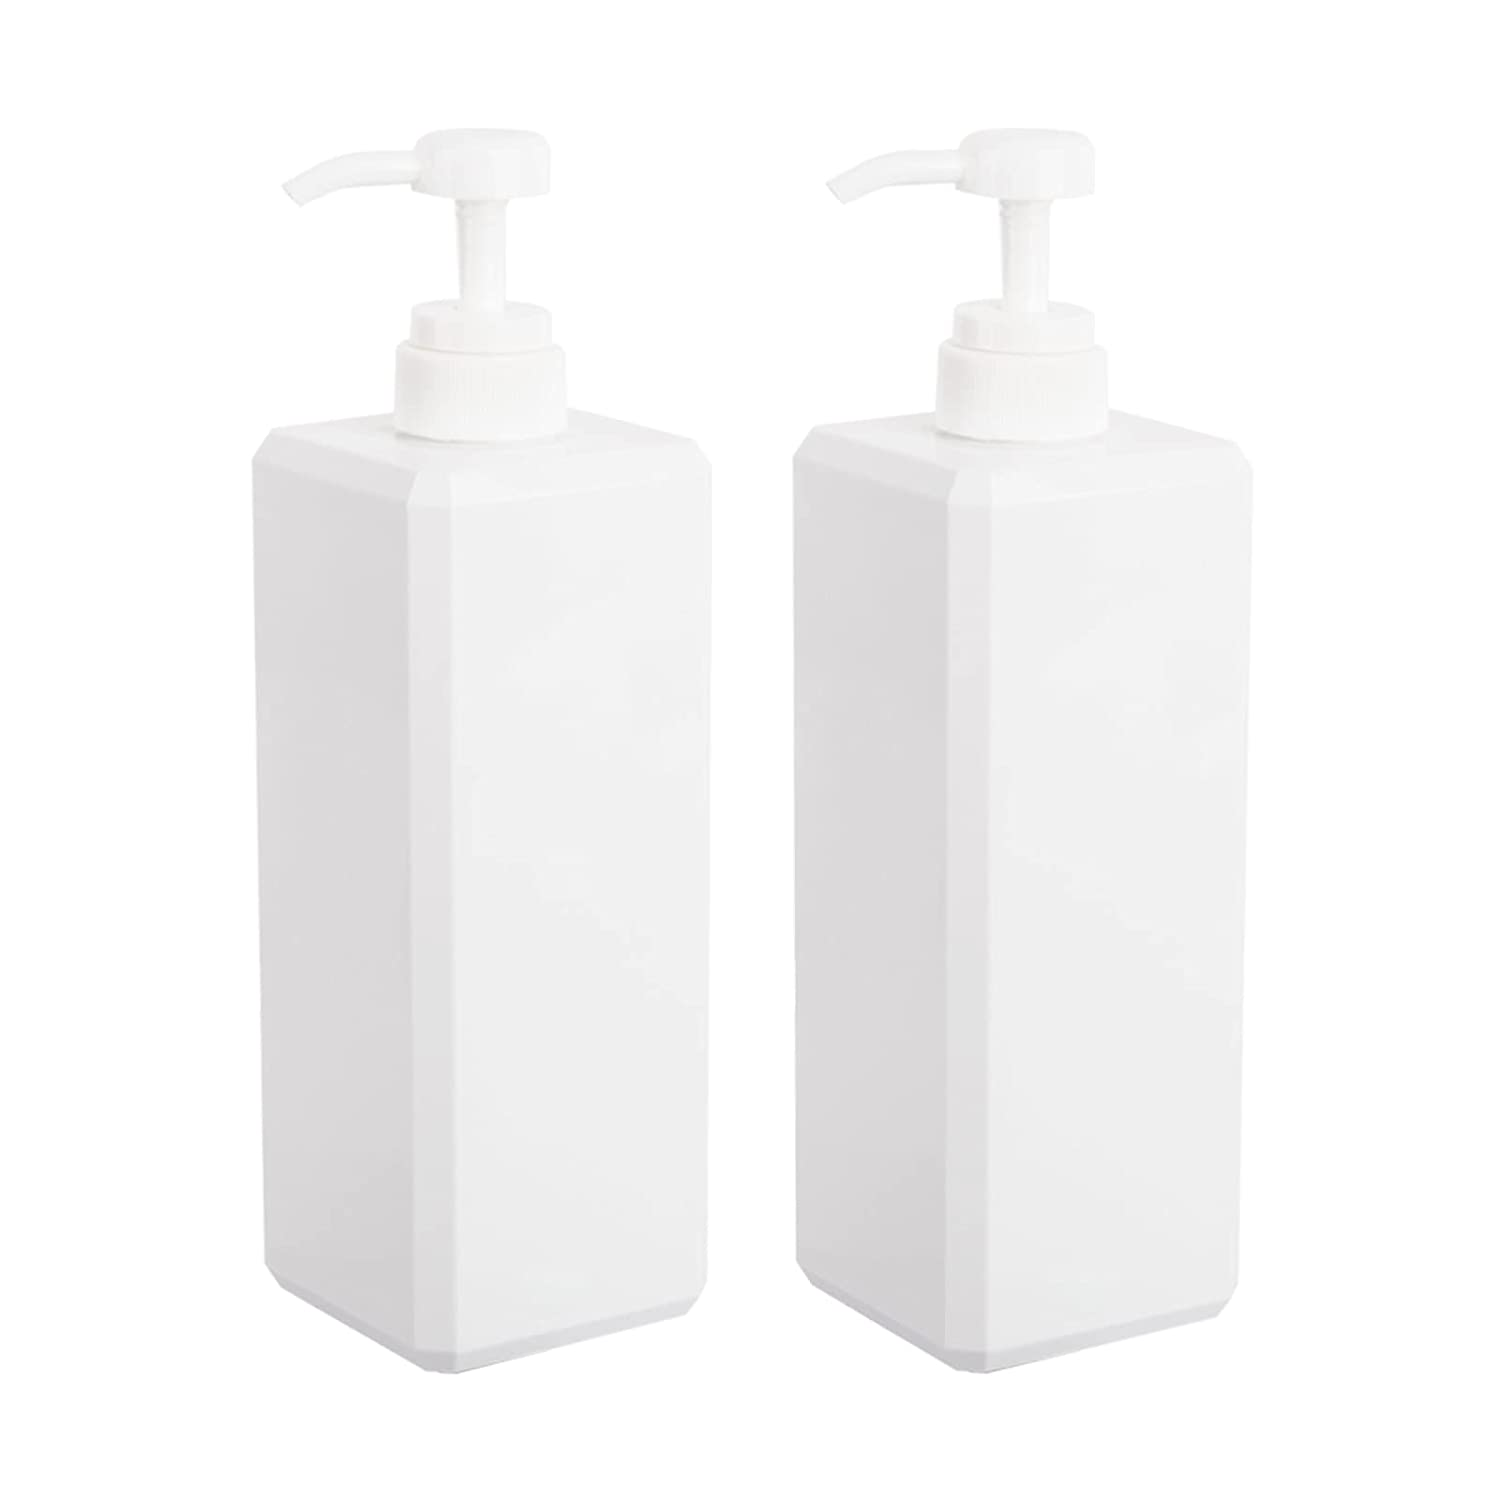 Empty Plastic Pump Bottles, Refillable Lotion Soap Dispenser Liquid Container for Kitchen or Bathroom Soaps Shampoo and Body Wash, 2 Pack (32oz/1L, white)